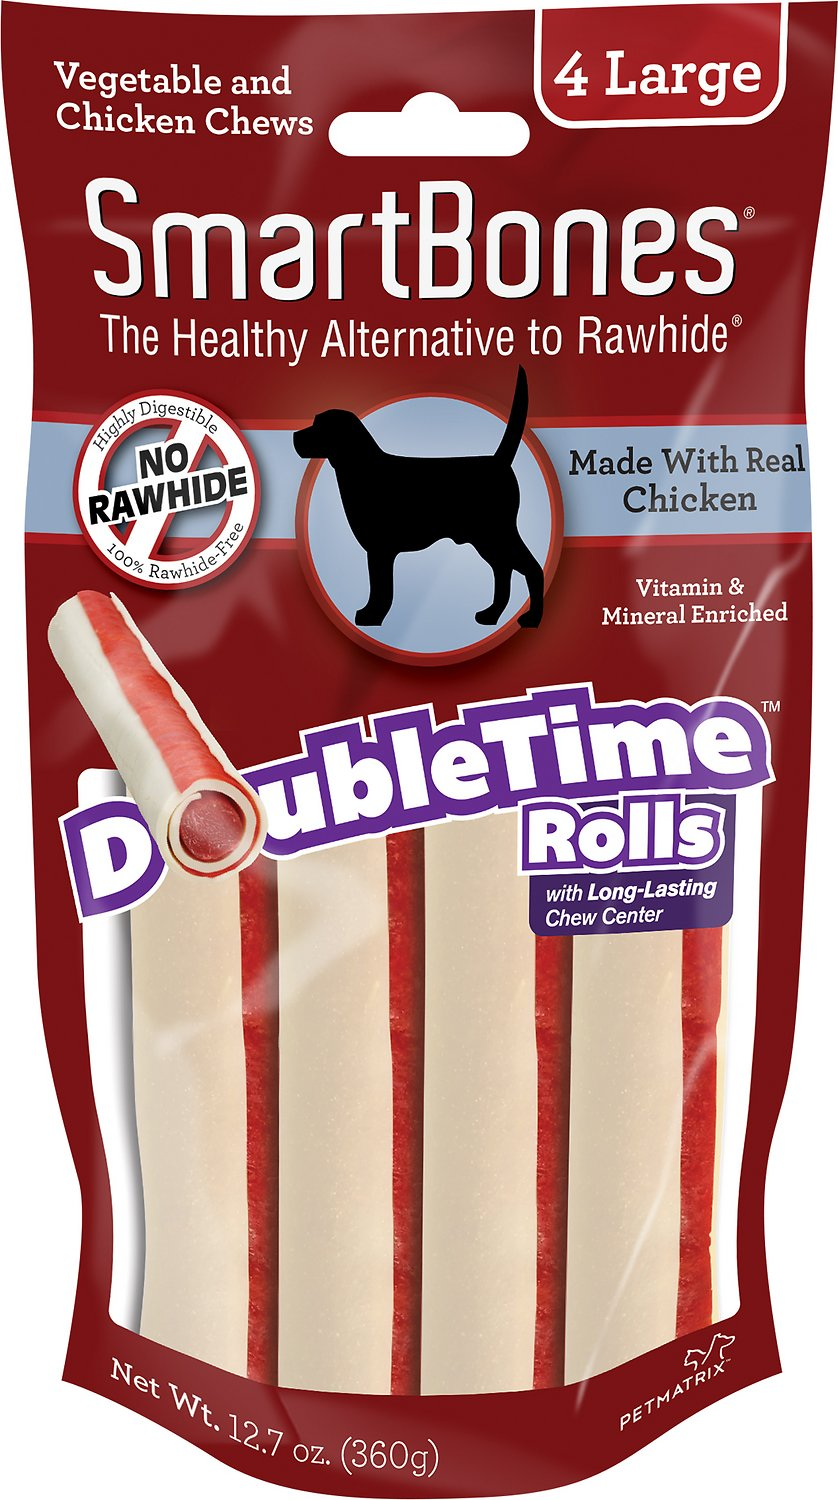 SmartBones Large DoubleTime Chicken Rolls Dog Treats, 4 pack